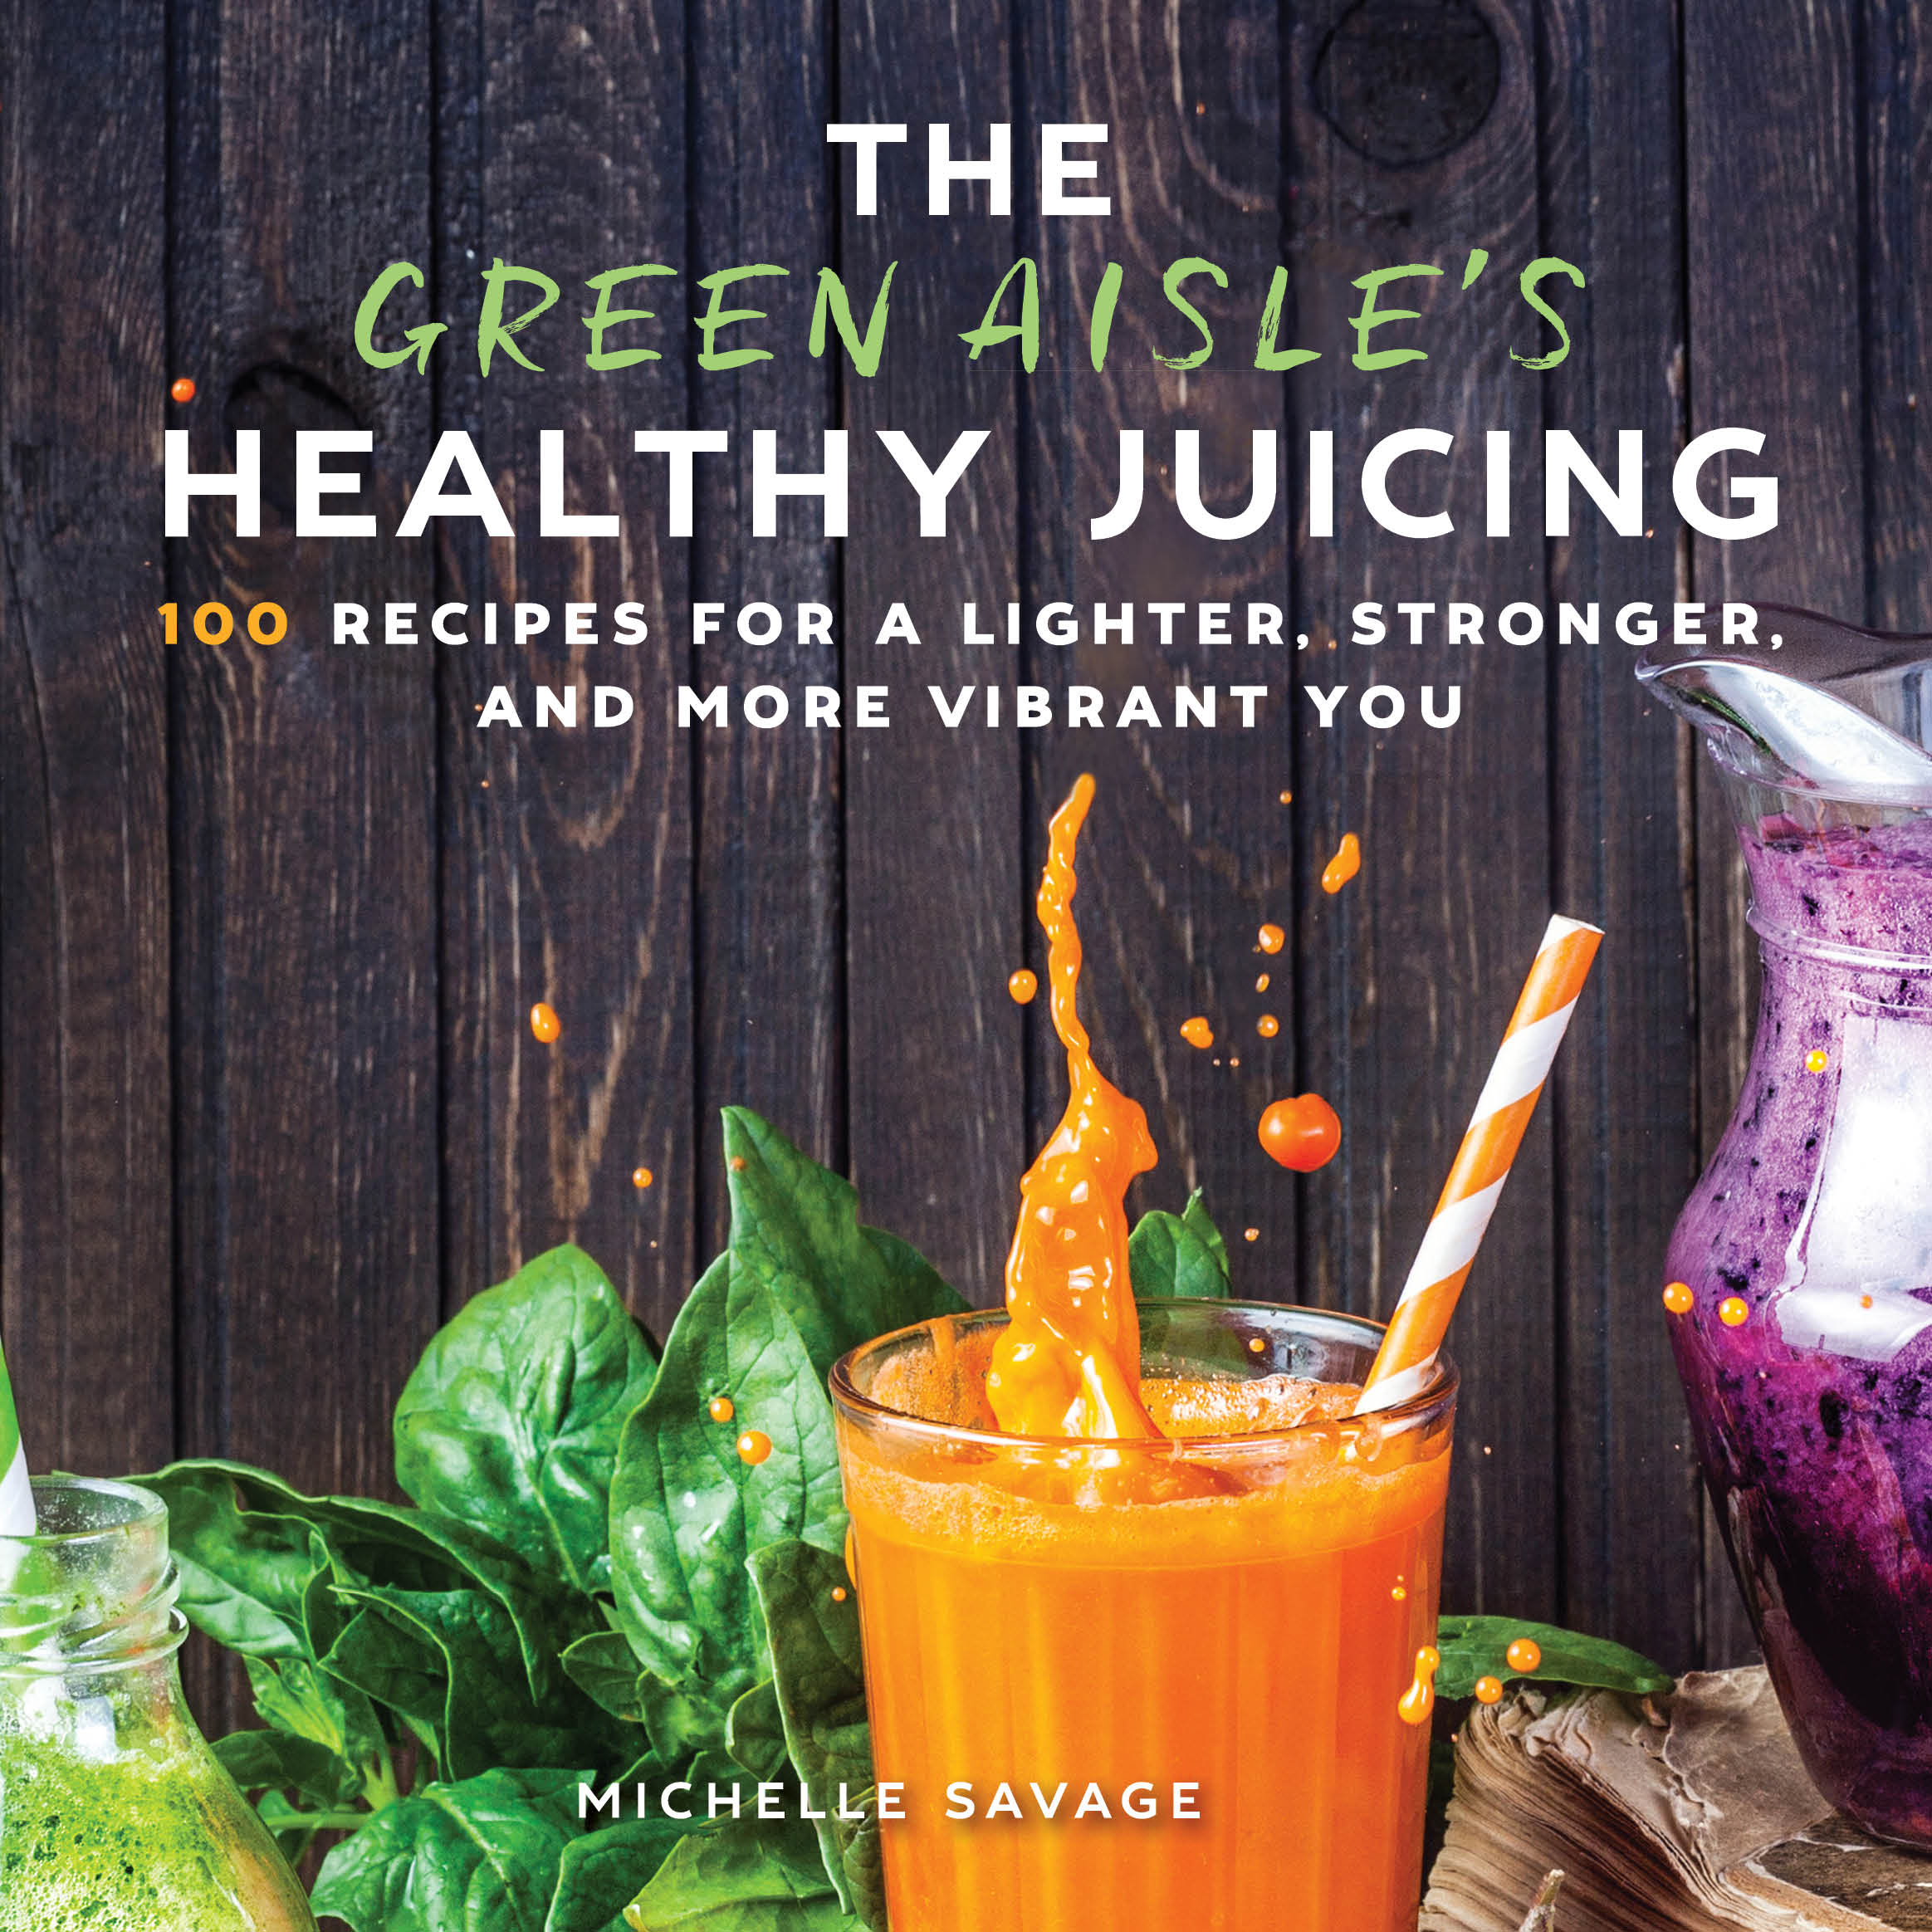 Green Aisle's Healthy Juicing.jpg